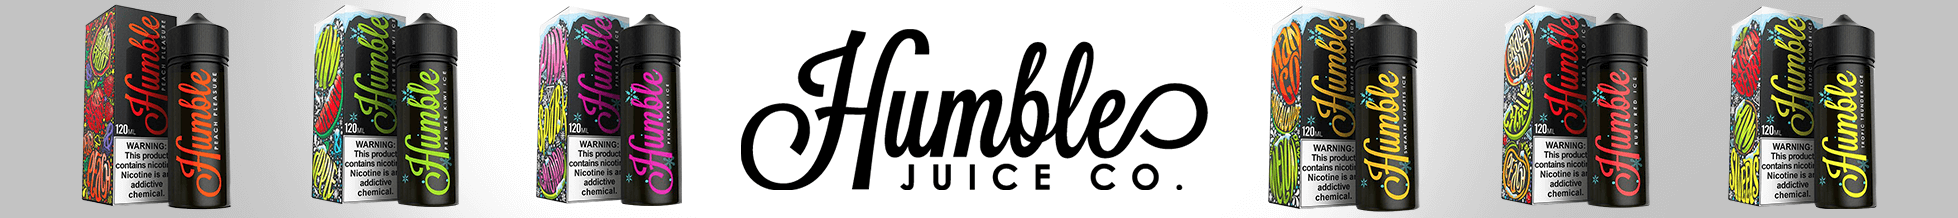 humble-category-banner.png